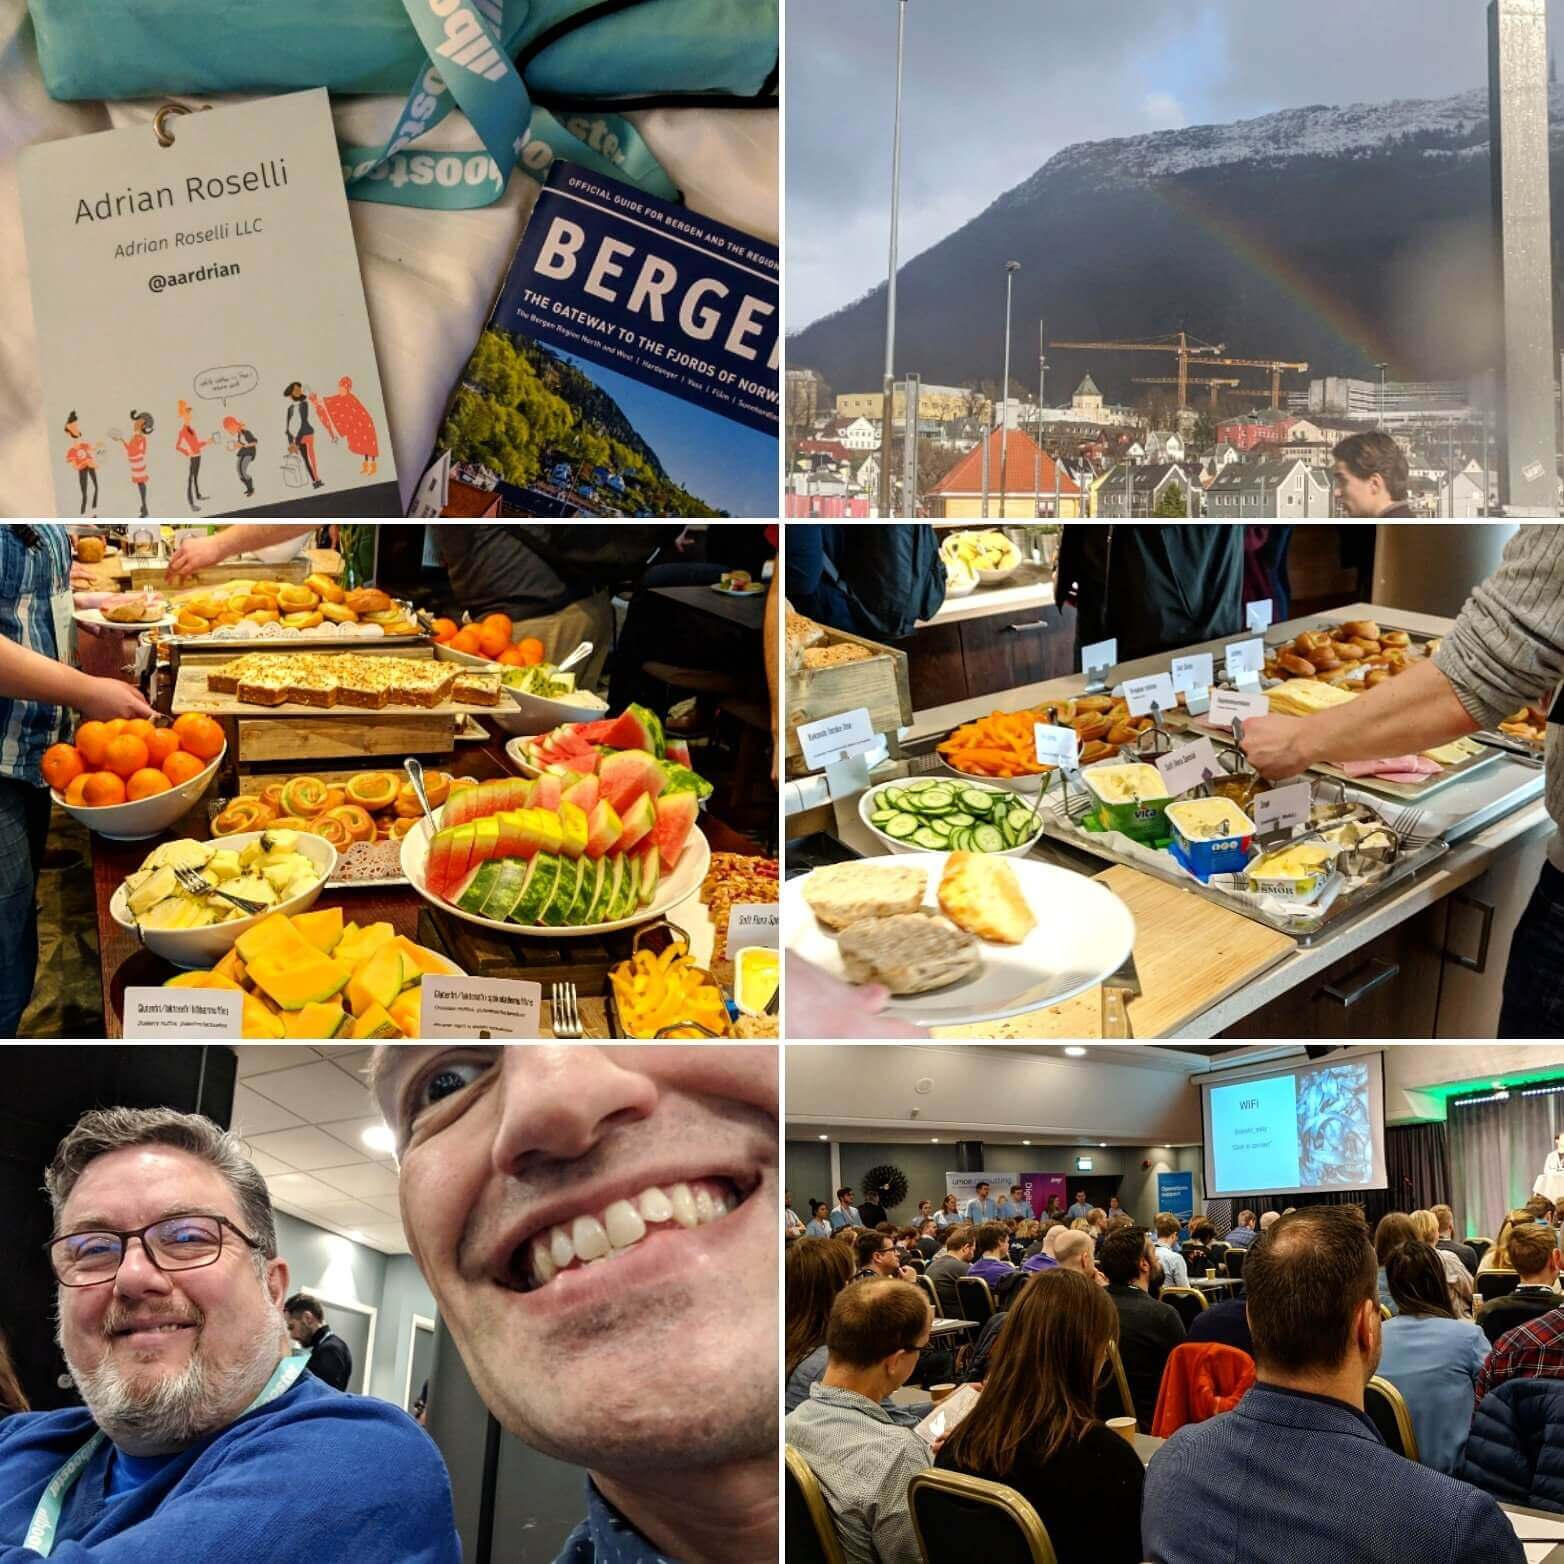 Multiple photos including my badge, a rainbow, two tables full of food, a crowded room of attendees, and Martin.